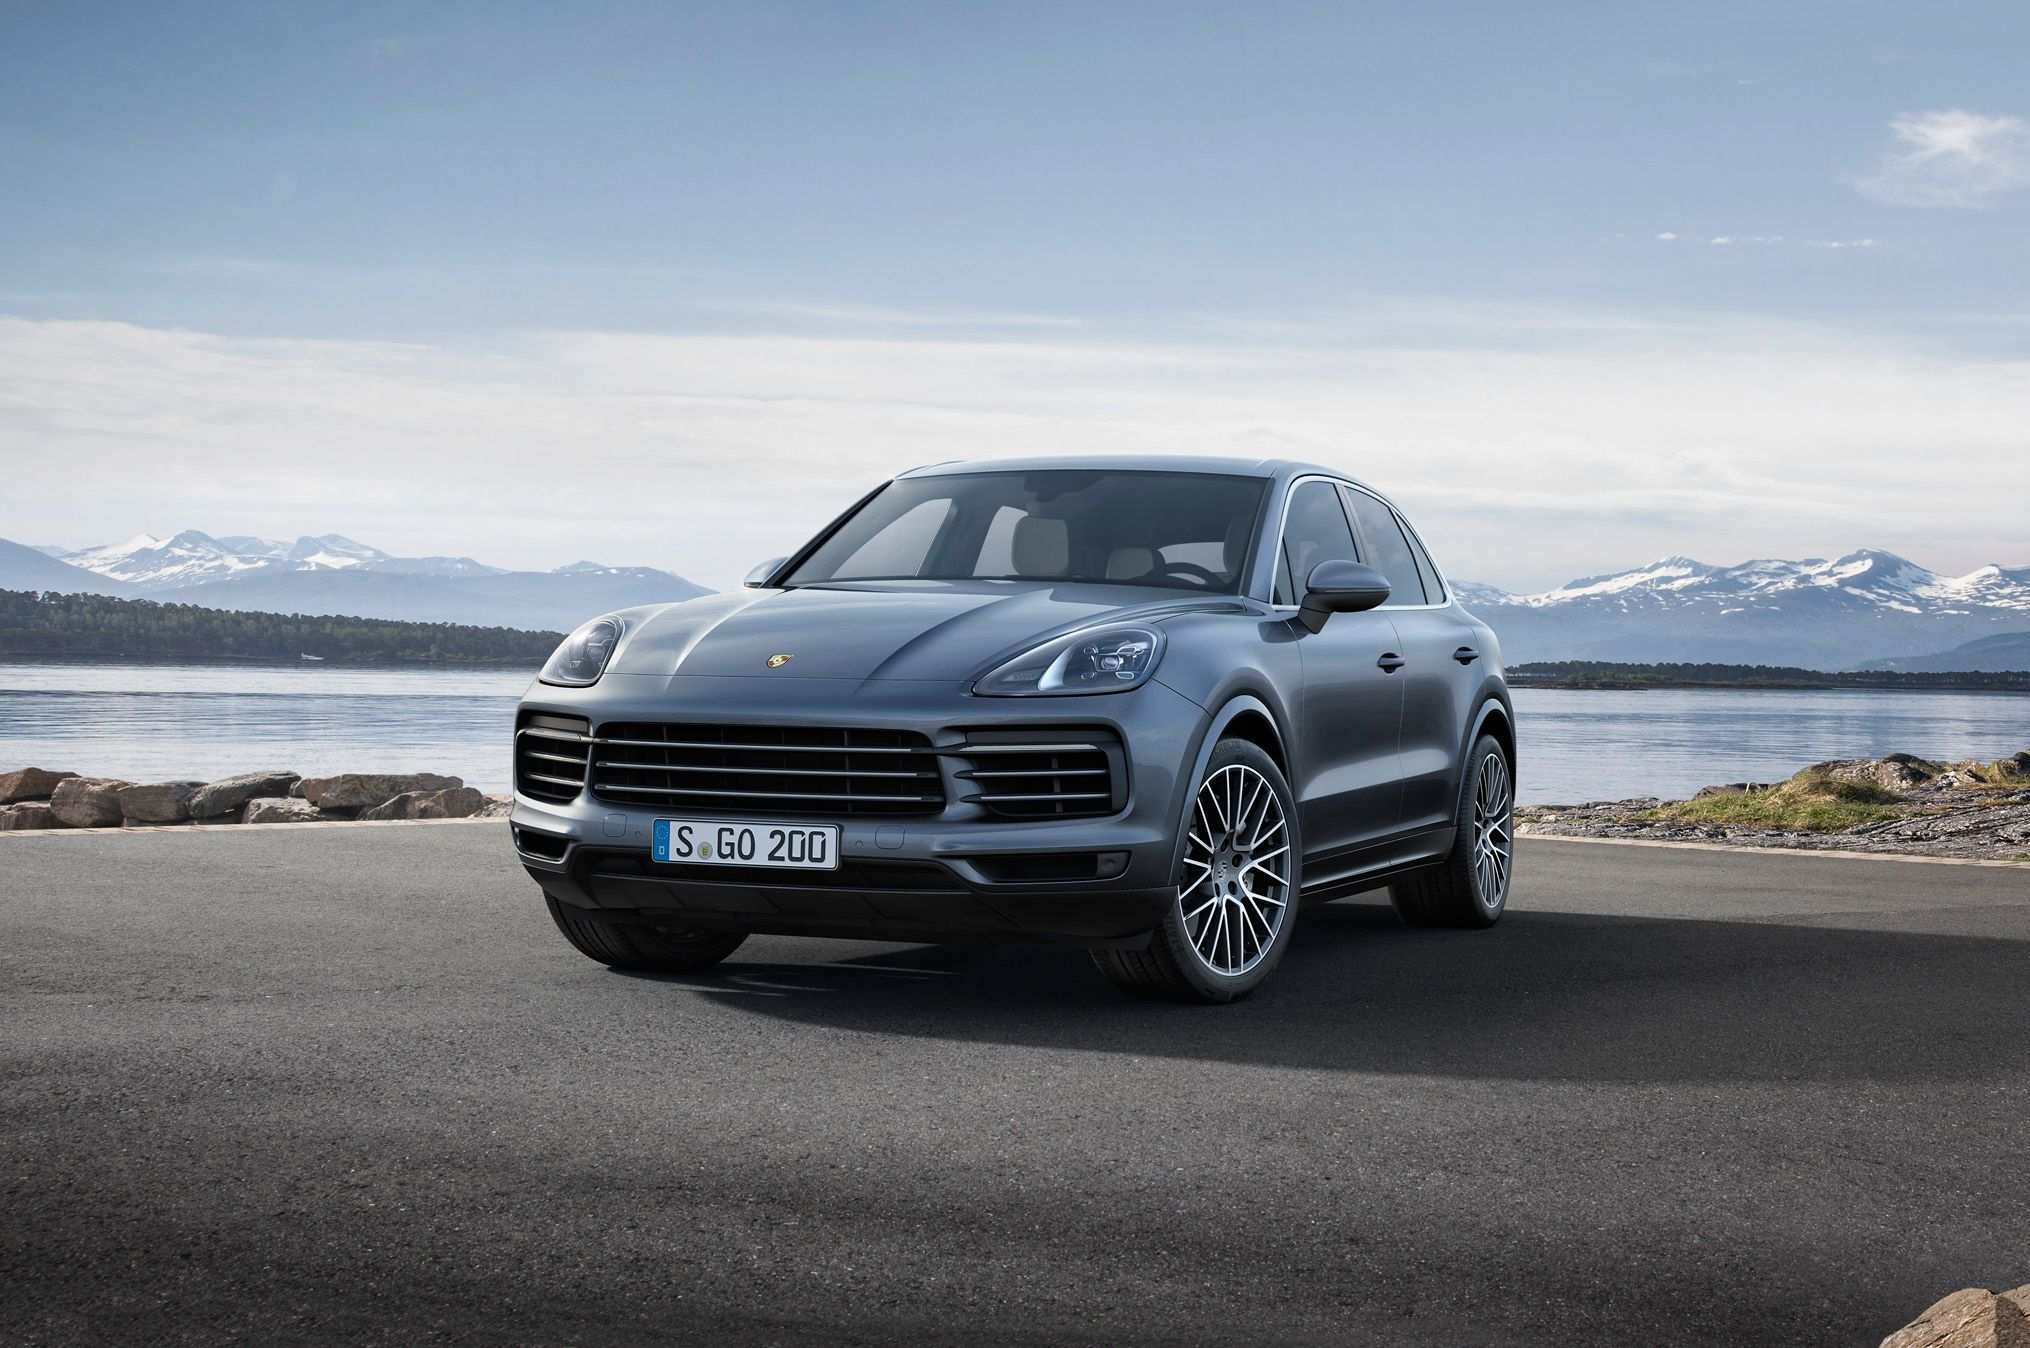 27 Gallery of 2019 Porsche Cayenne First Look New Concept by 2019 Porsche Cayenne First Look